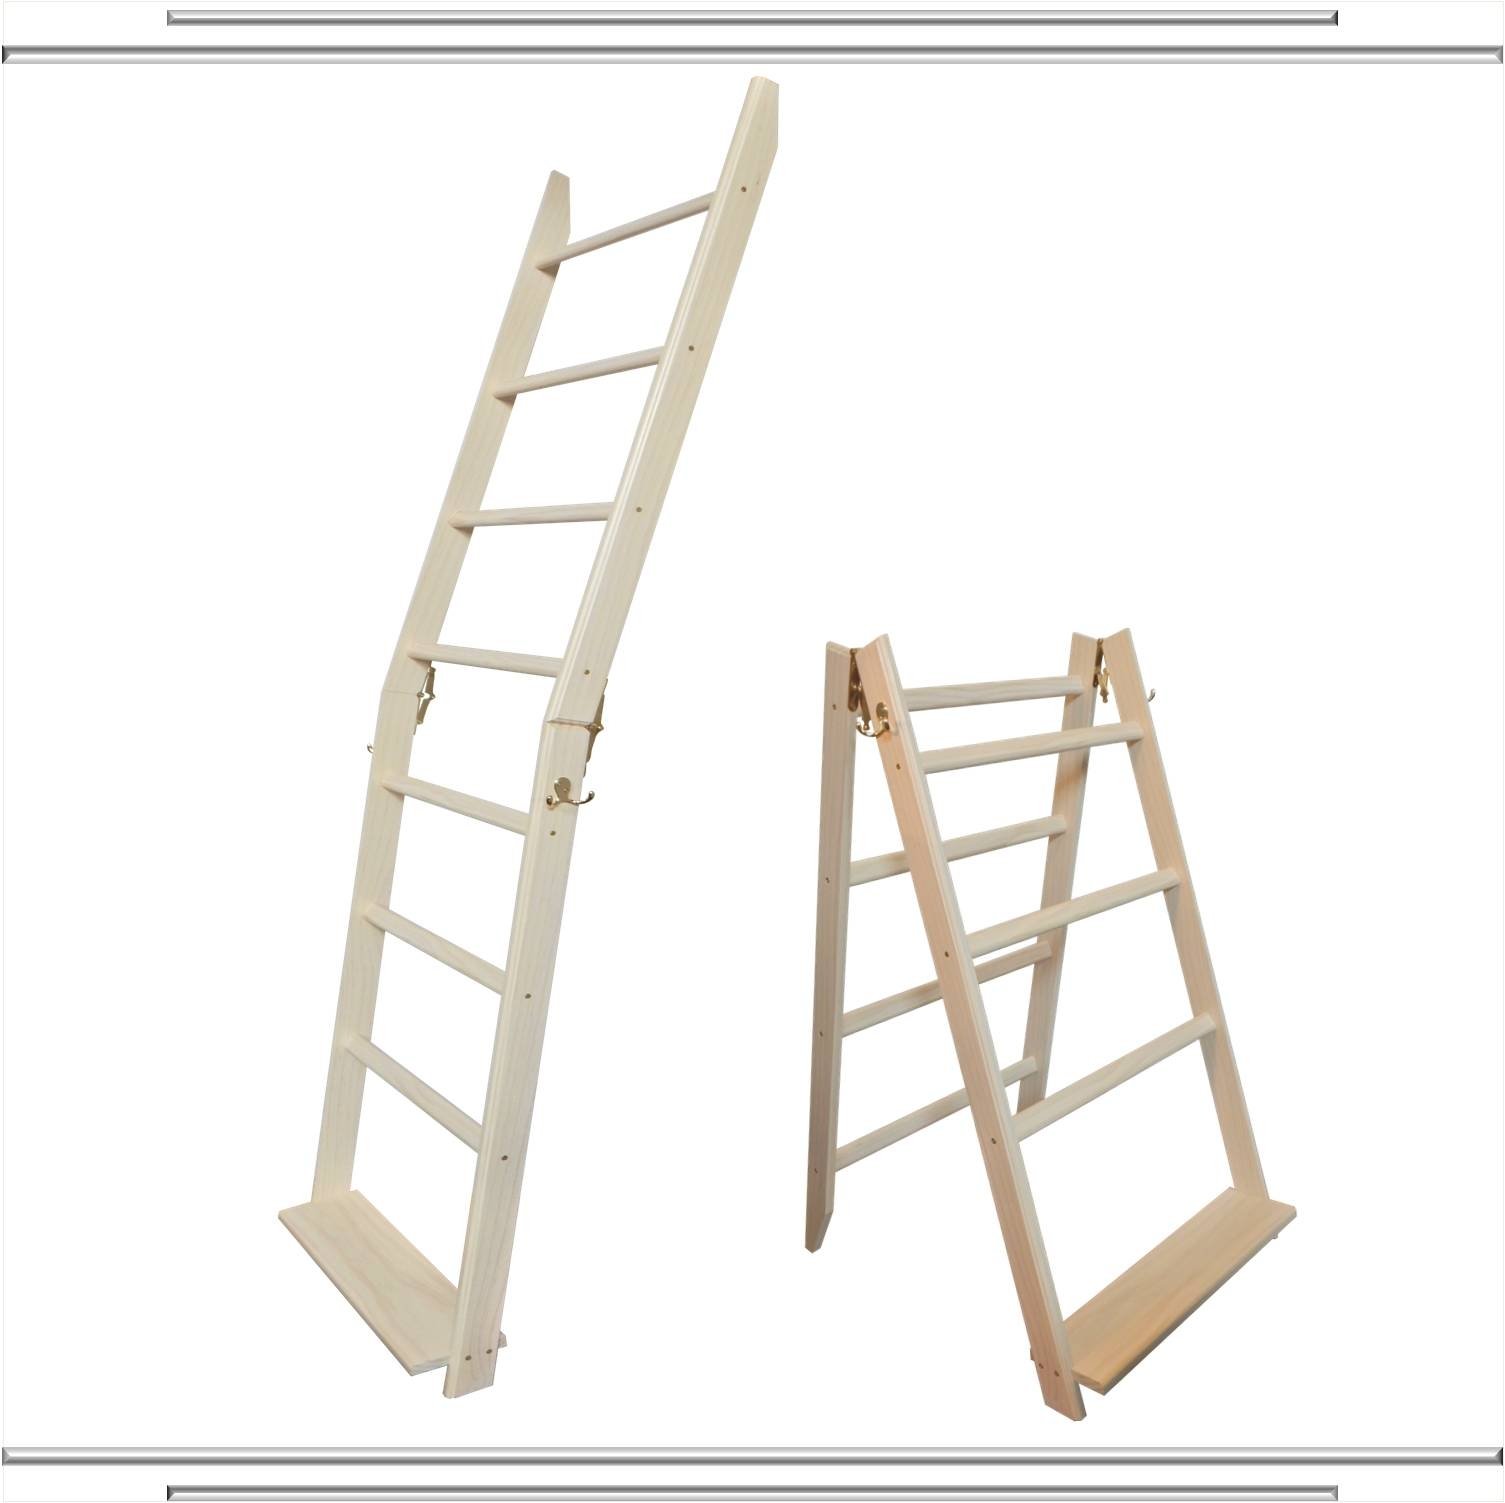 Whitewash Ladderrack Solid Wood Quilt Ladder Display Rack